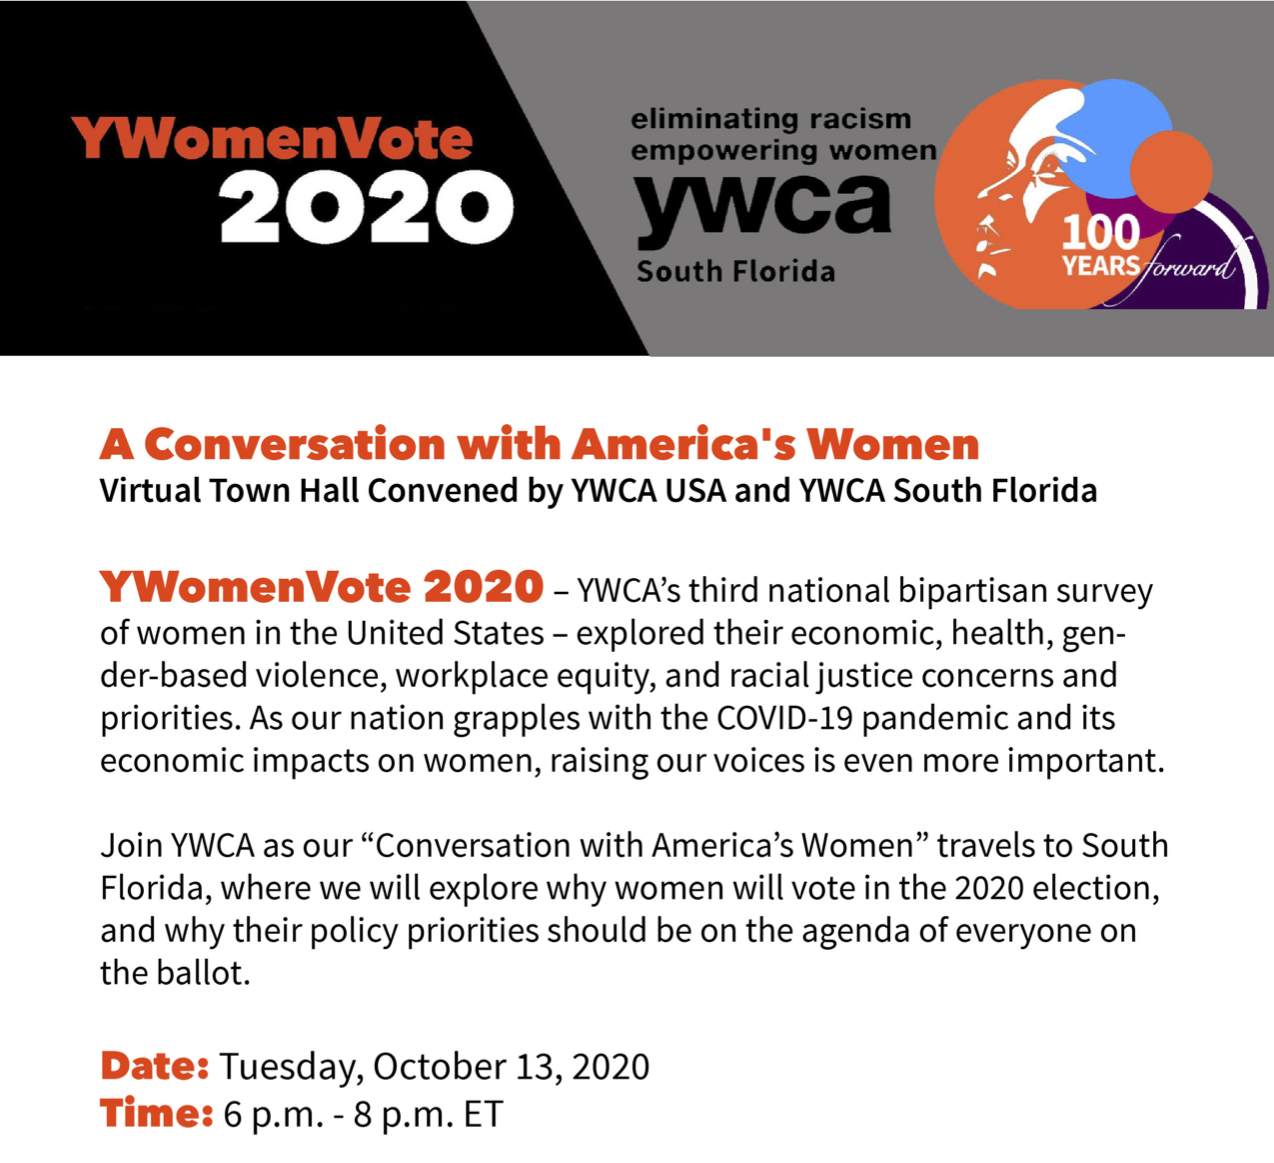 YWomen Vote | A Virtual Town Hall